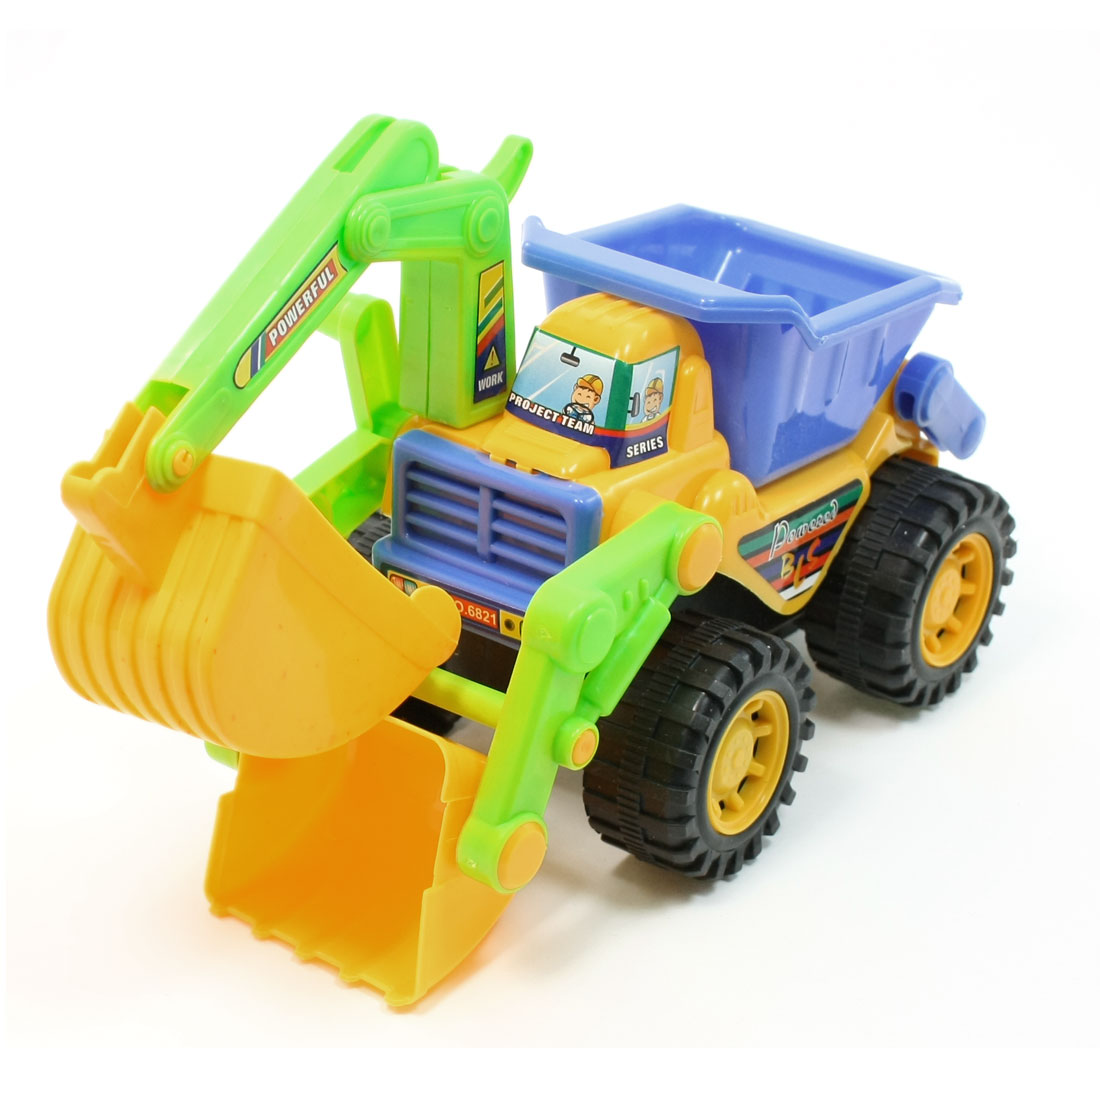 Kids Colorful Plastic Frame Digger Bulldozer Machinery Car Vehicle Toy